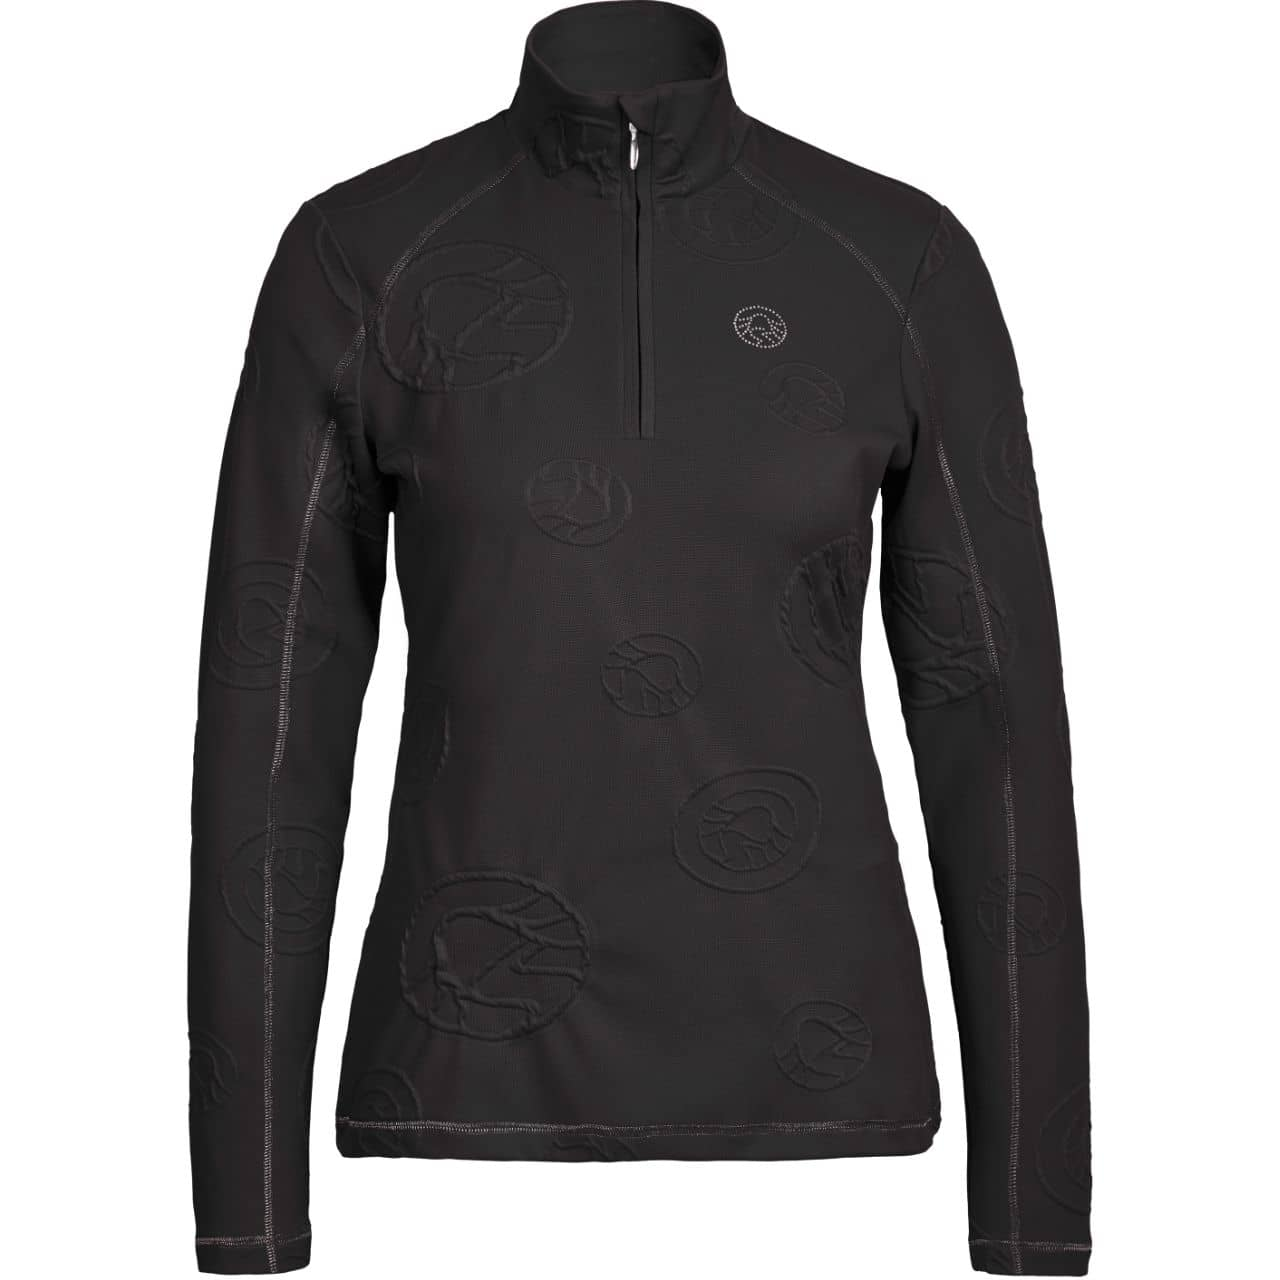 Sportalm Women First Layer 945105 black von Sportalm